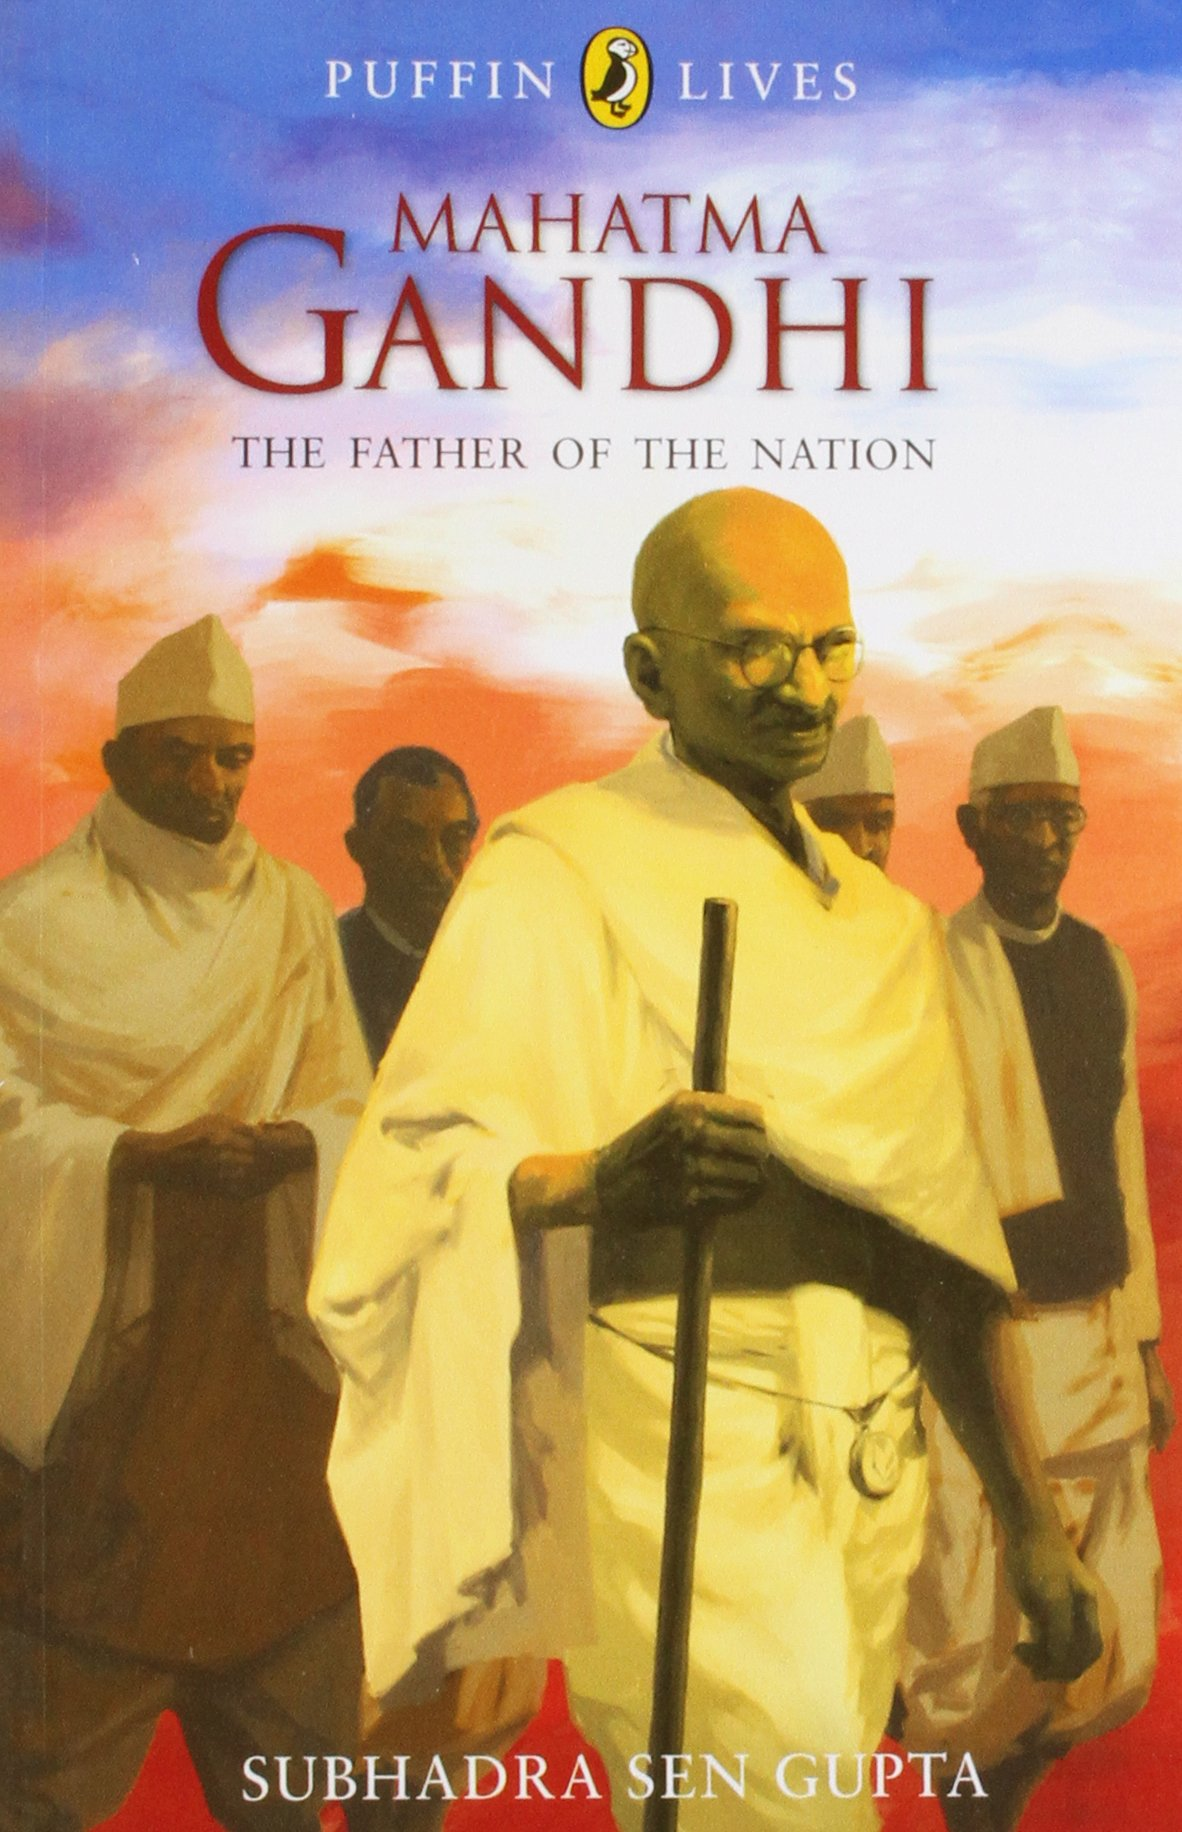 who is the father of mahatma gandhi